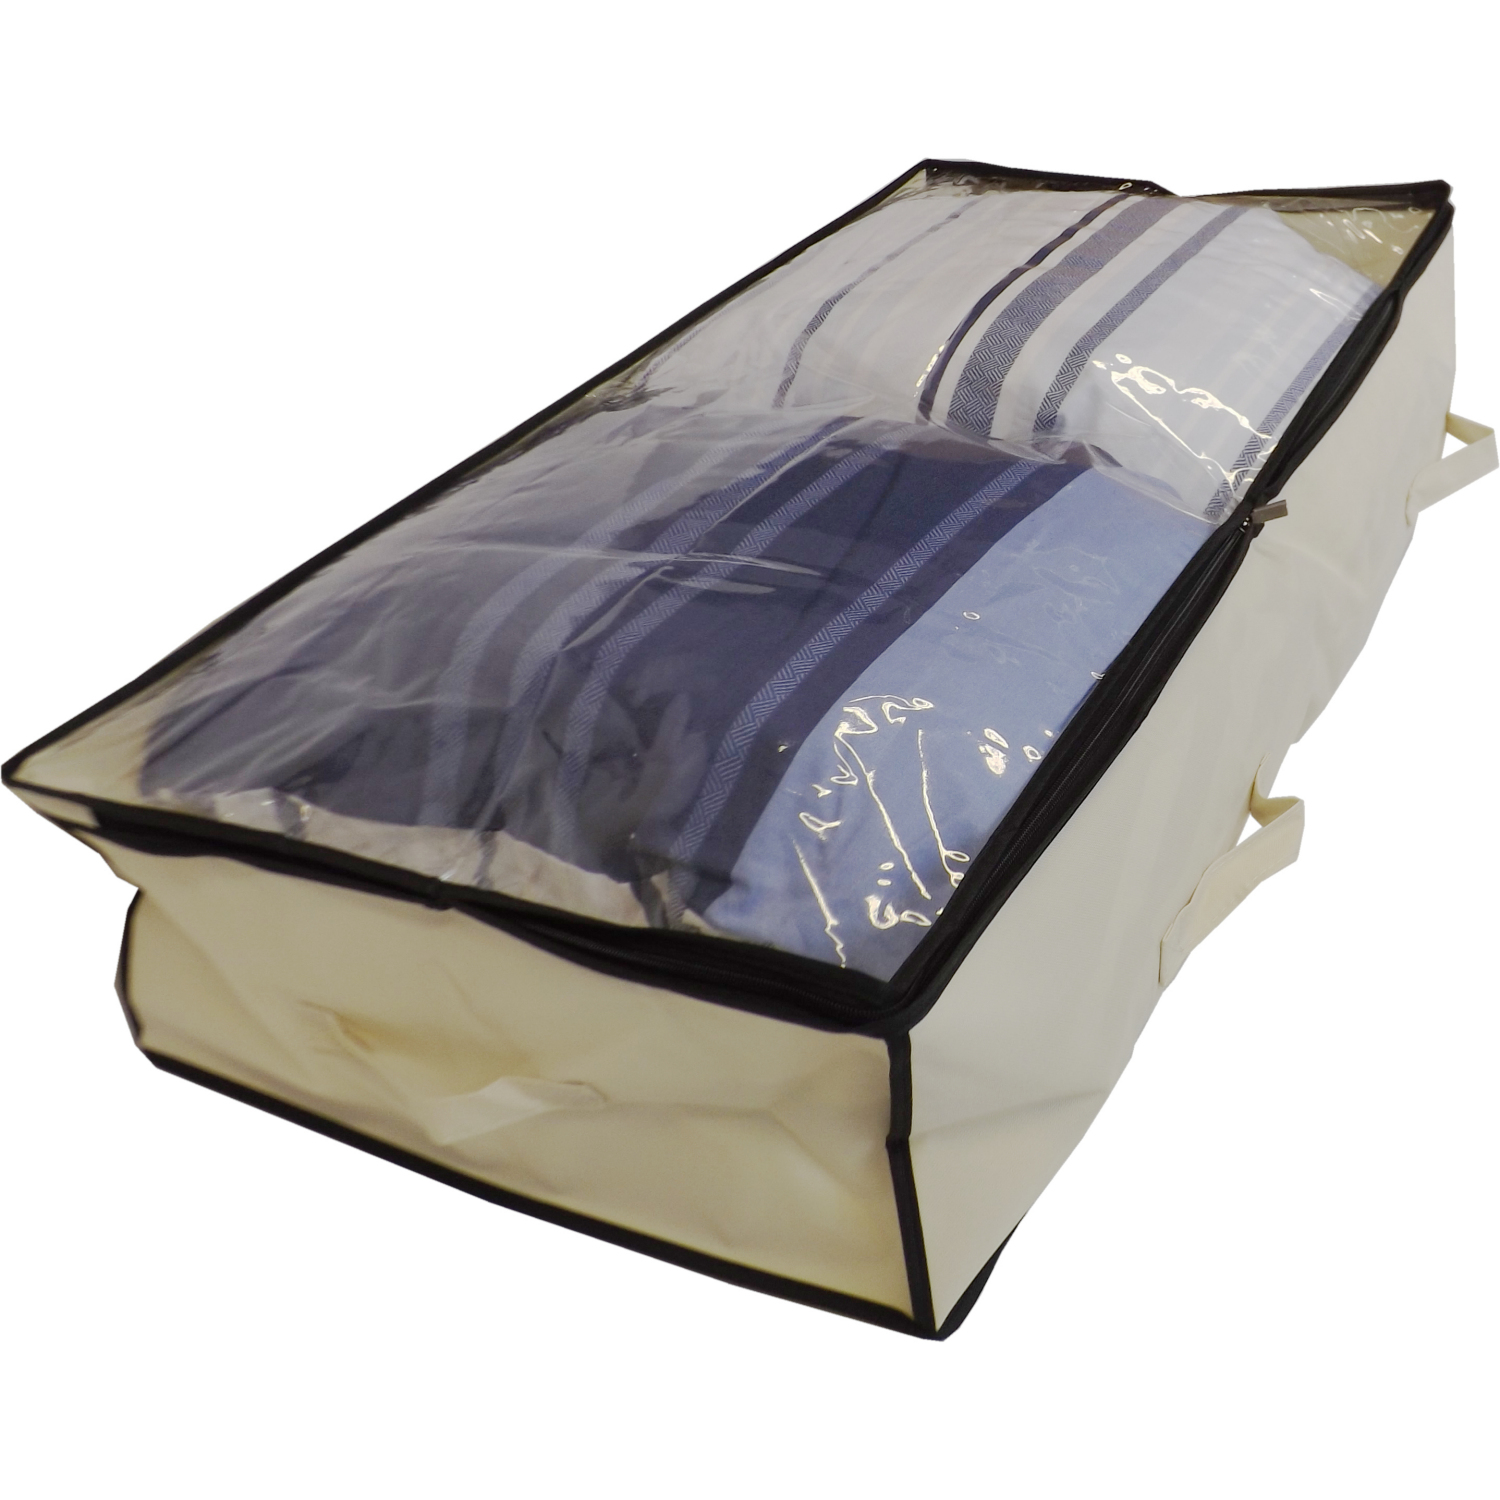 Large Underbed Storage Bag With Clear Top, Heavy Duty, 100 Litre Capacity, 100x50x20cm, Beige